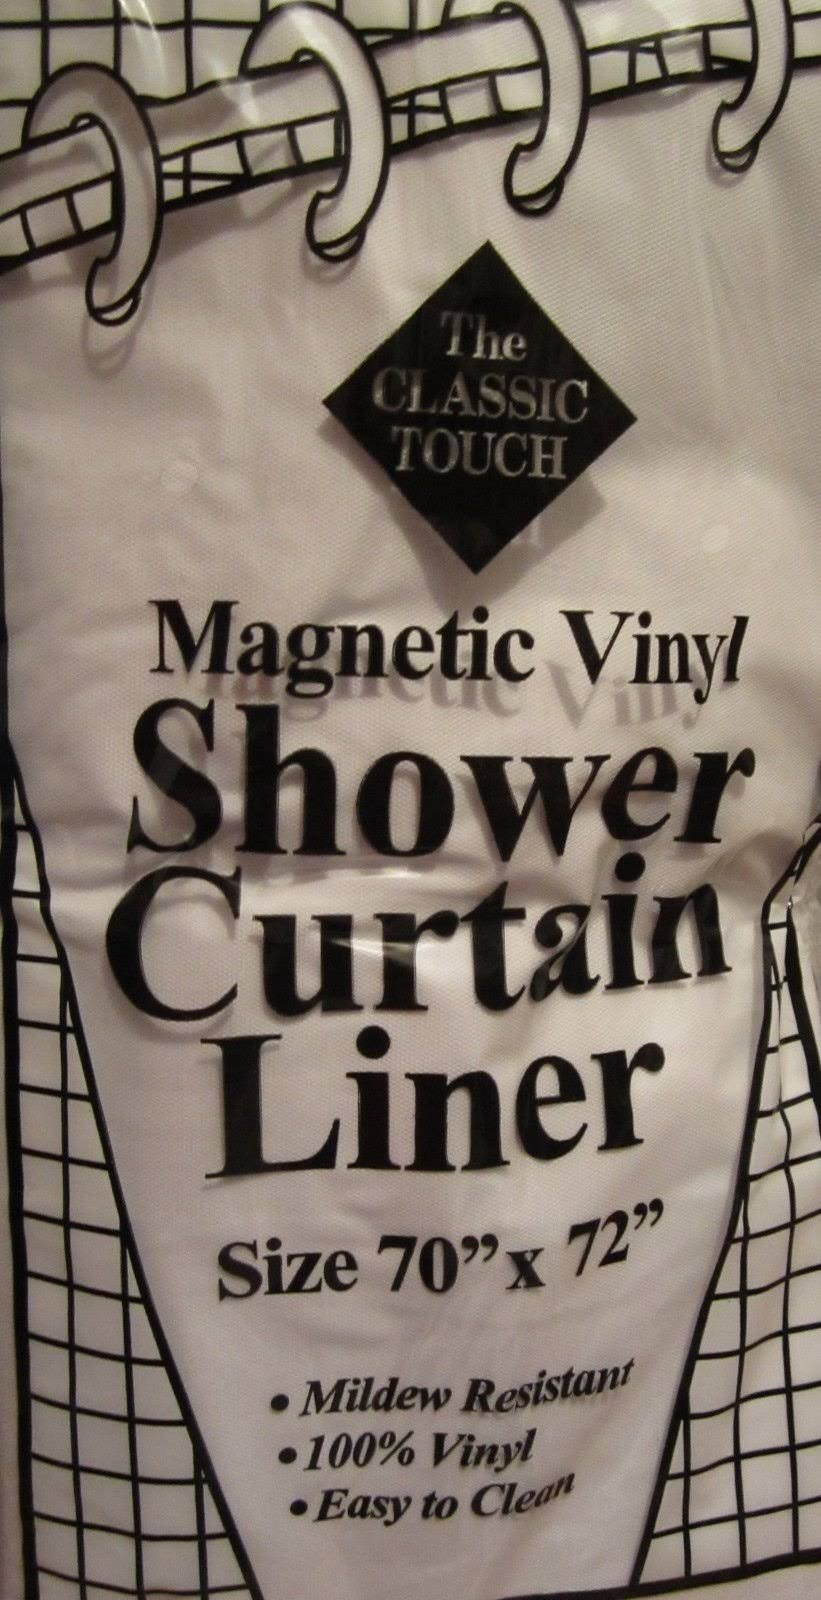 Magnetic Vinyl Shower Curtain Liner White The Classic Touch